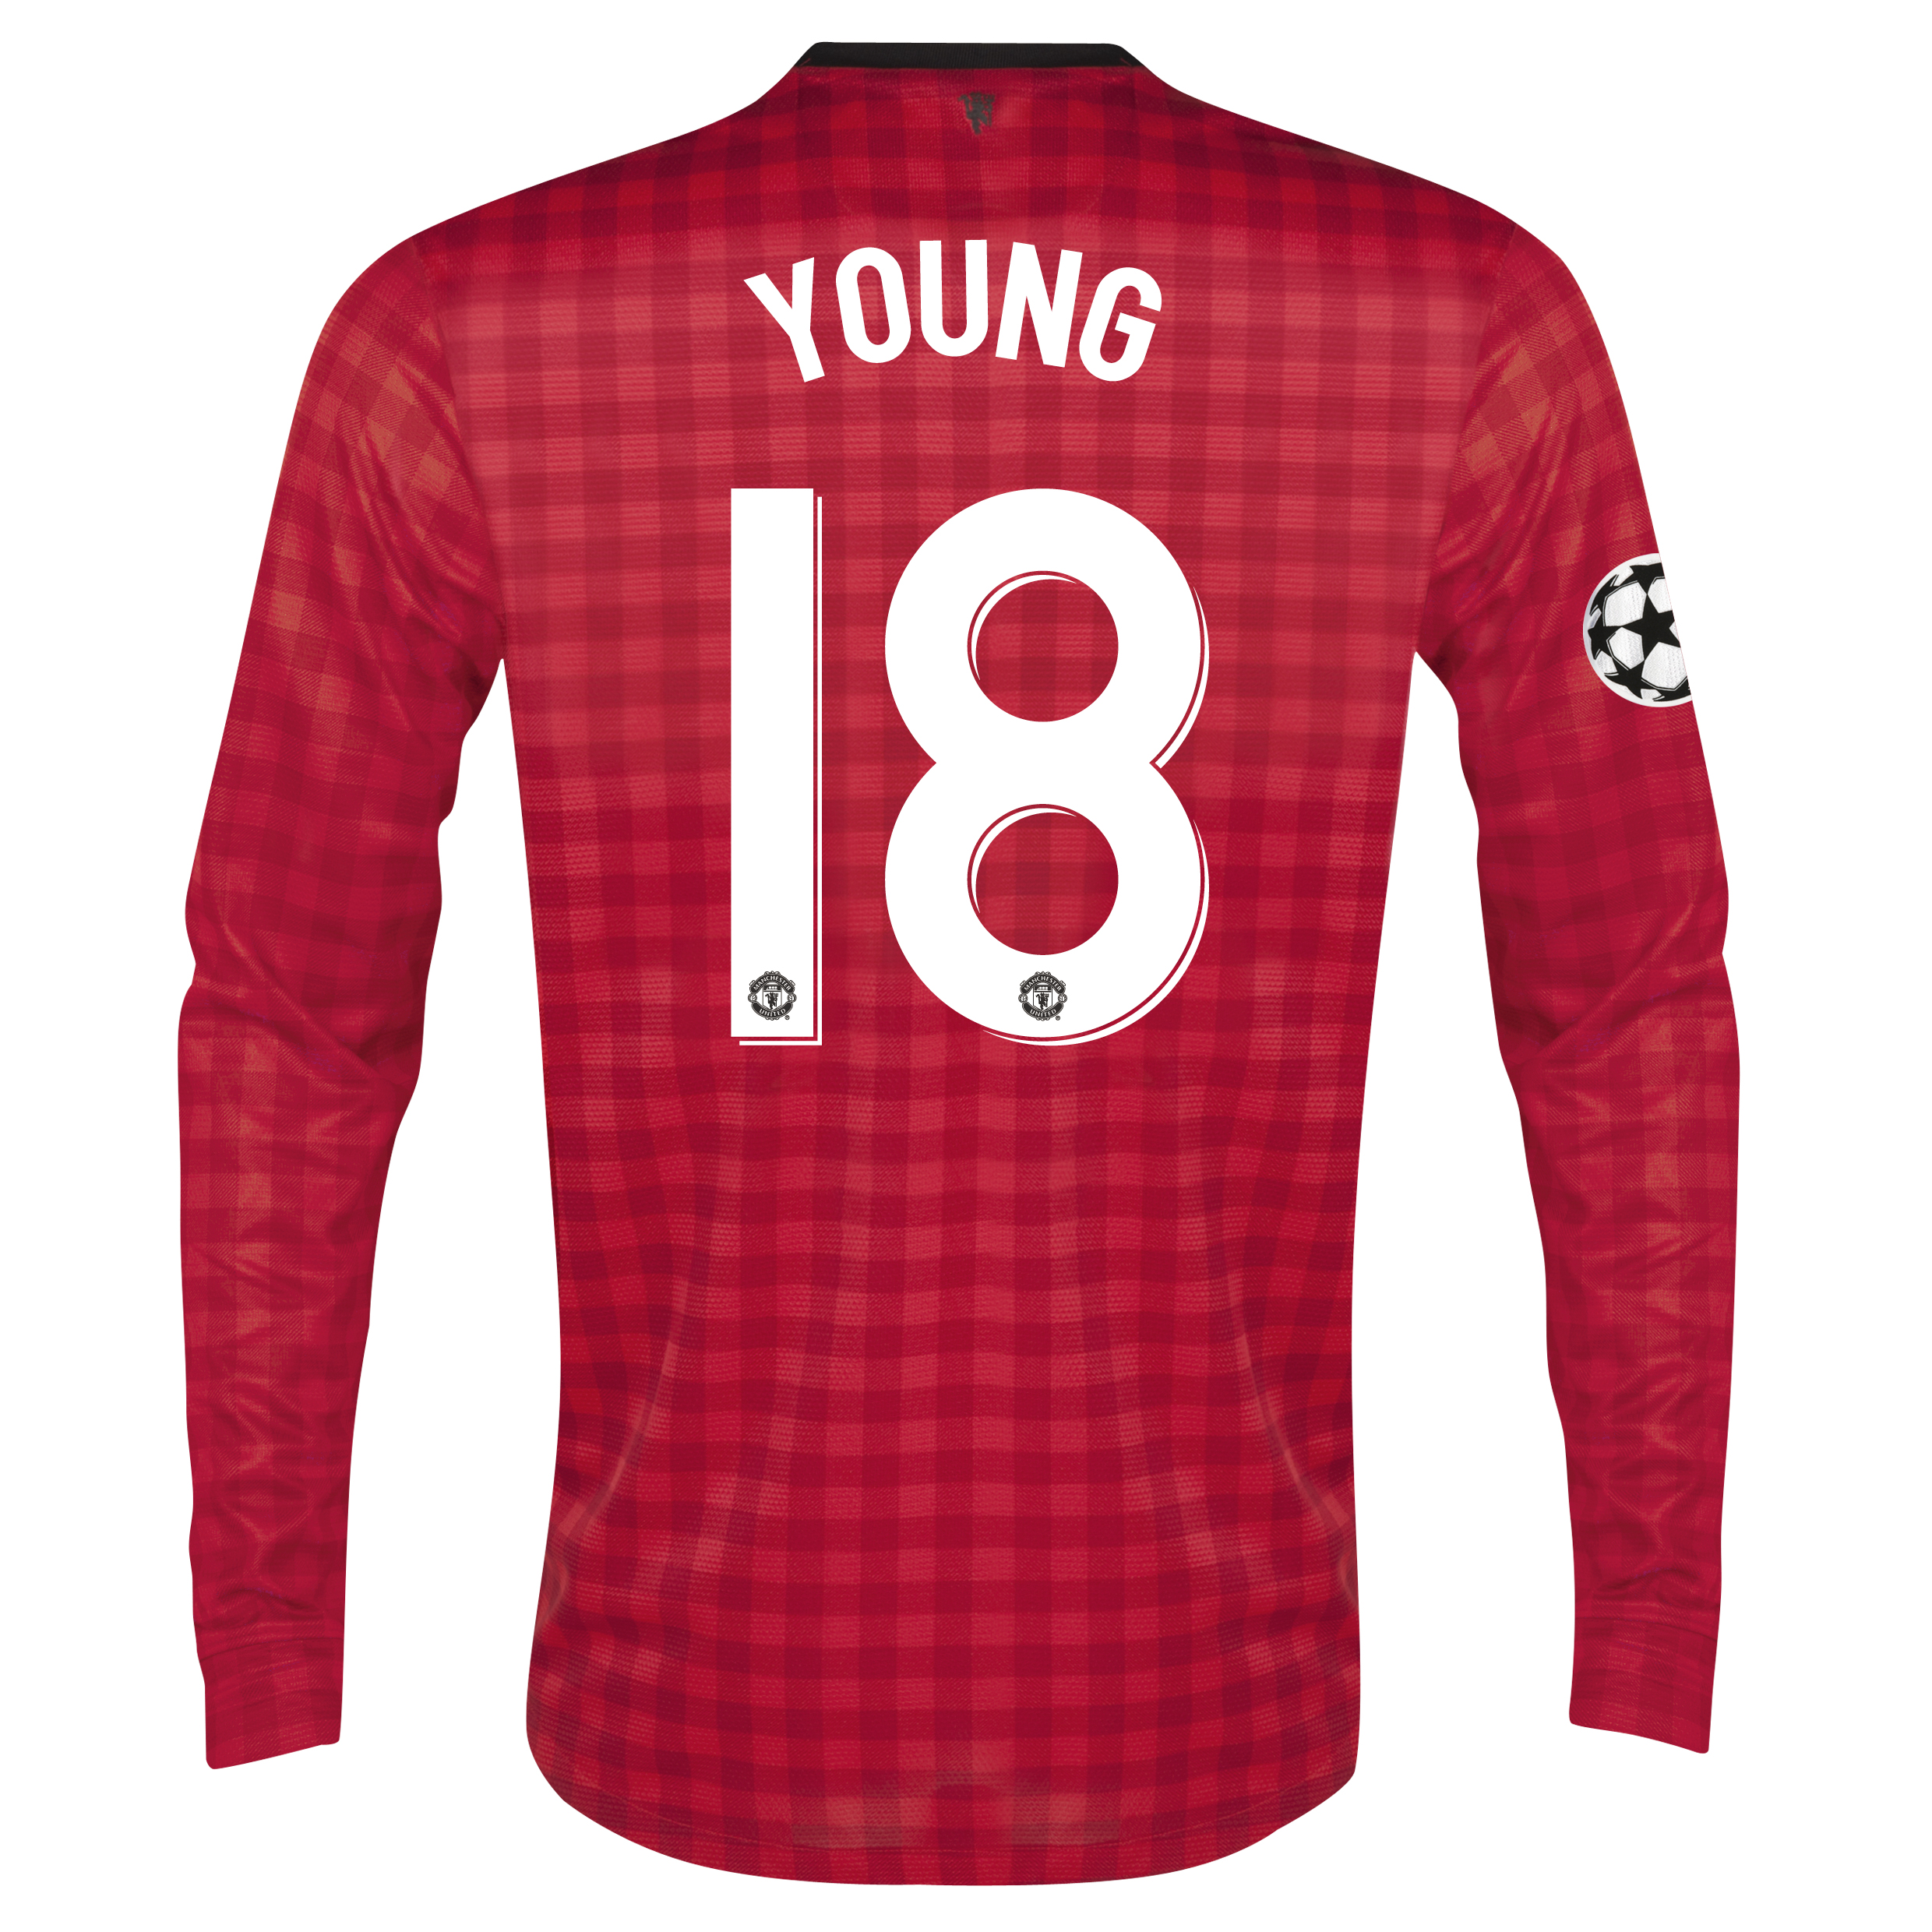 Man United UEFA Champions League Home Shirt 2012/13 - Long Sleeved with Young 18 printing